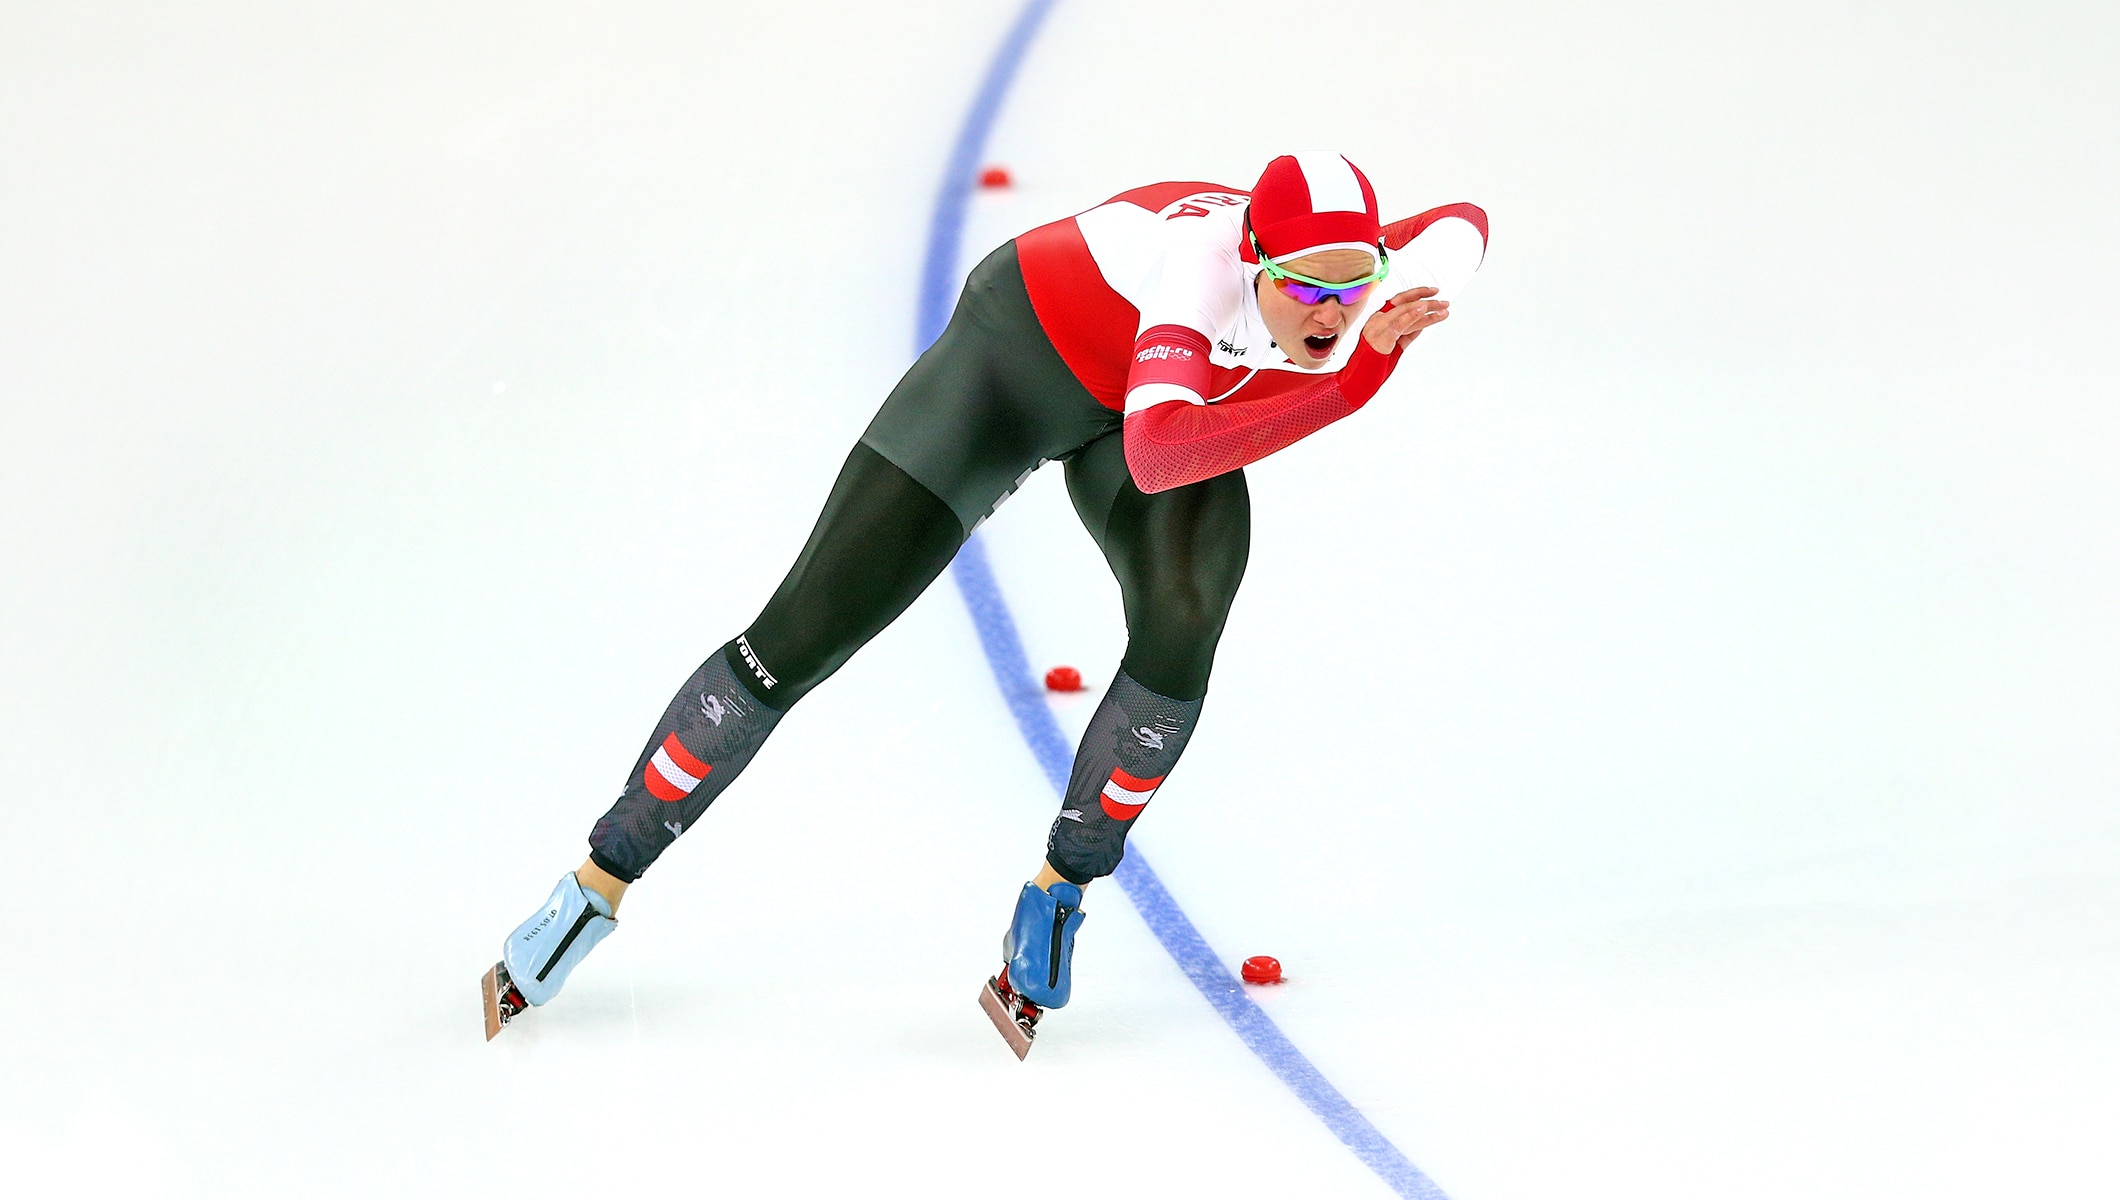 Short Track Speed Skating At The 2020 Olympic Winter Games.Vanessa Herzog World Champion Speed Skater And Yog Athlete